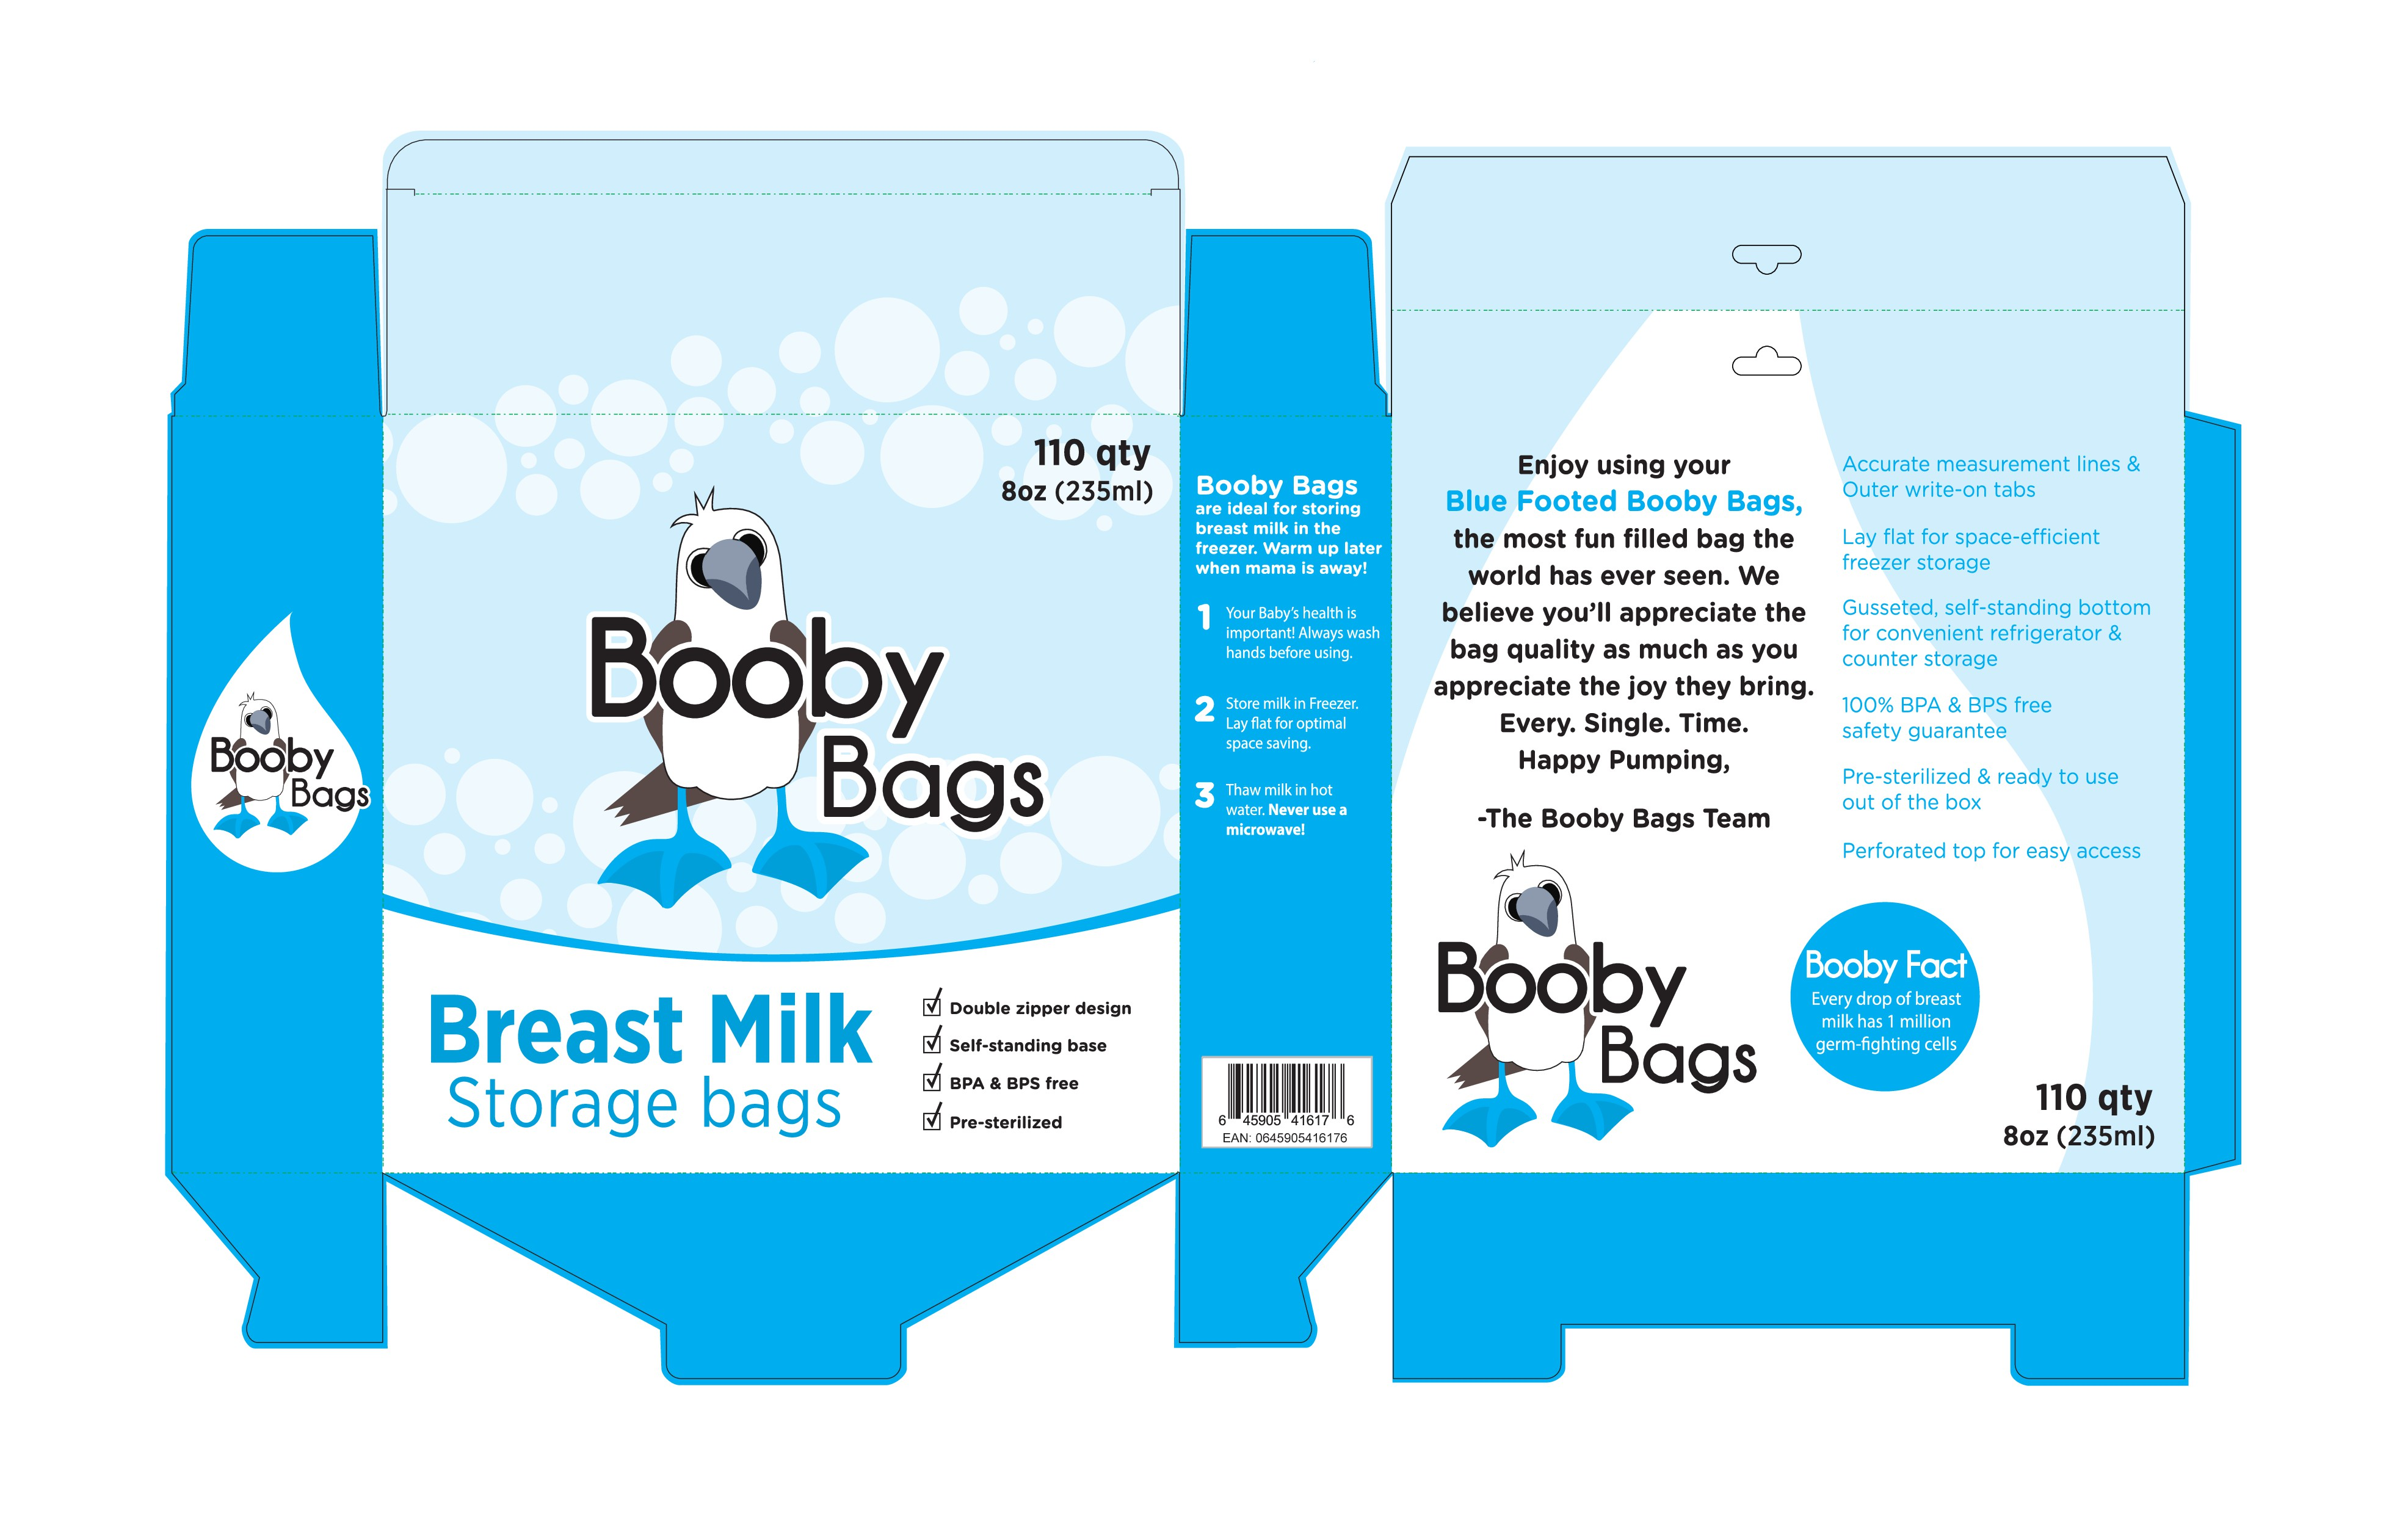 Designed for smiles, a box for BoobyBags